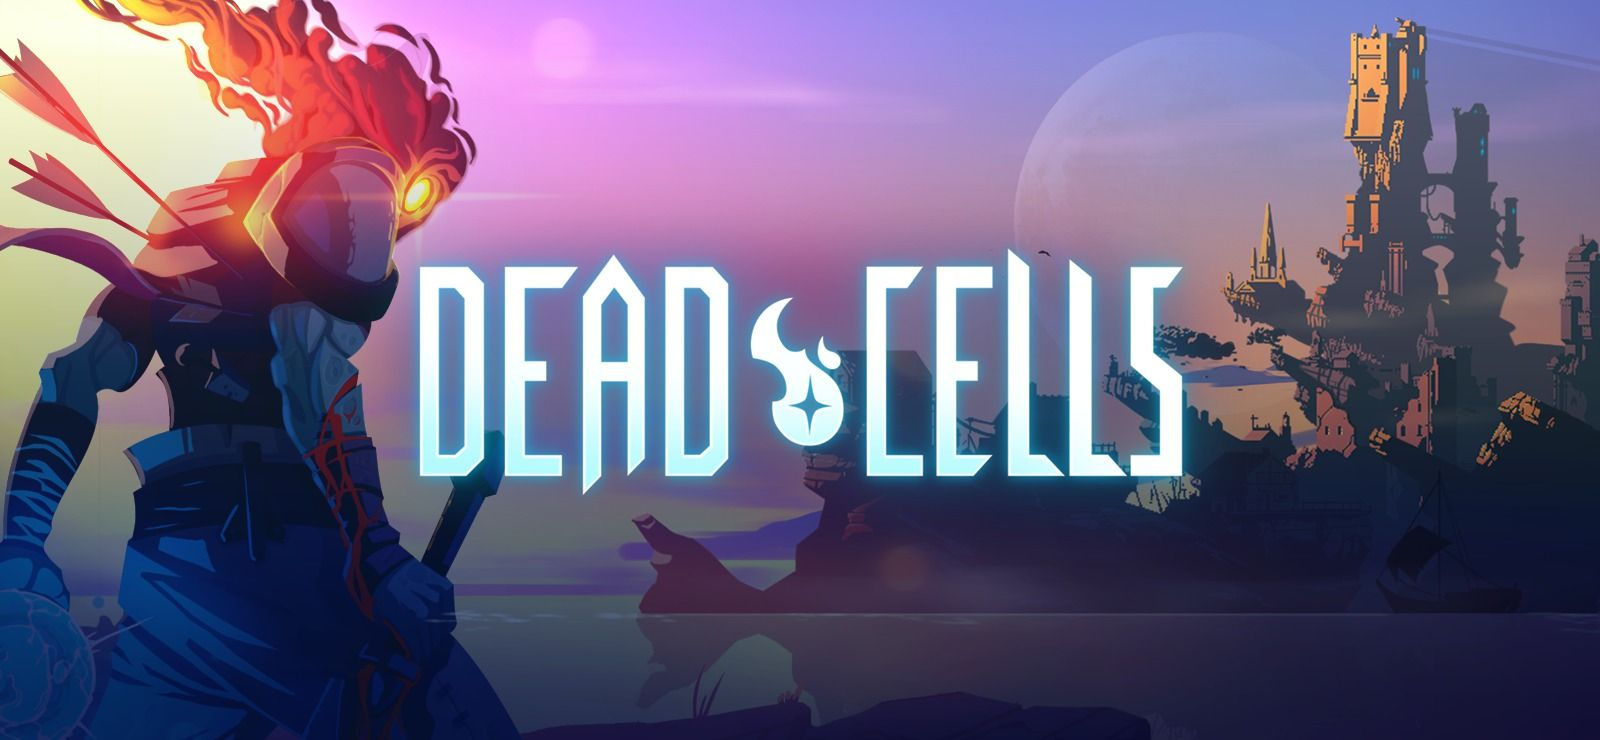 dead cells art ign plagiarism